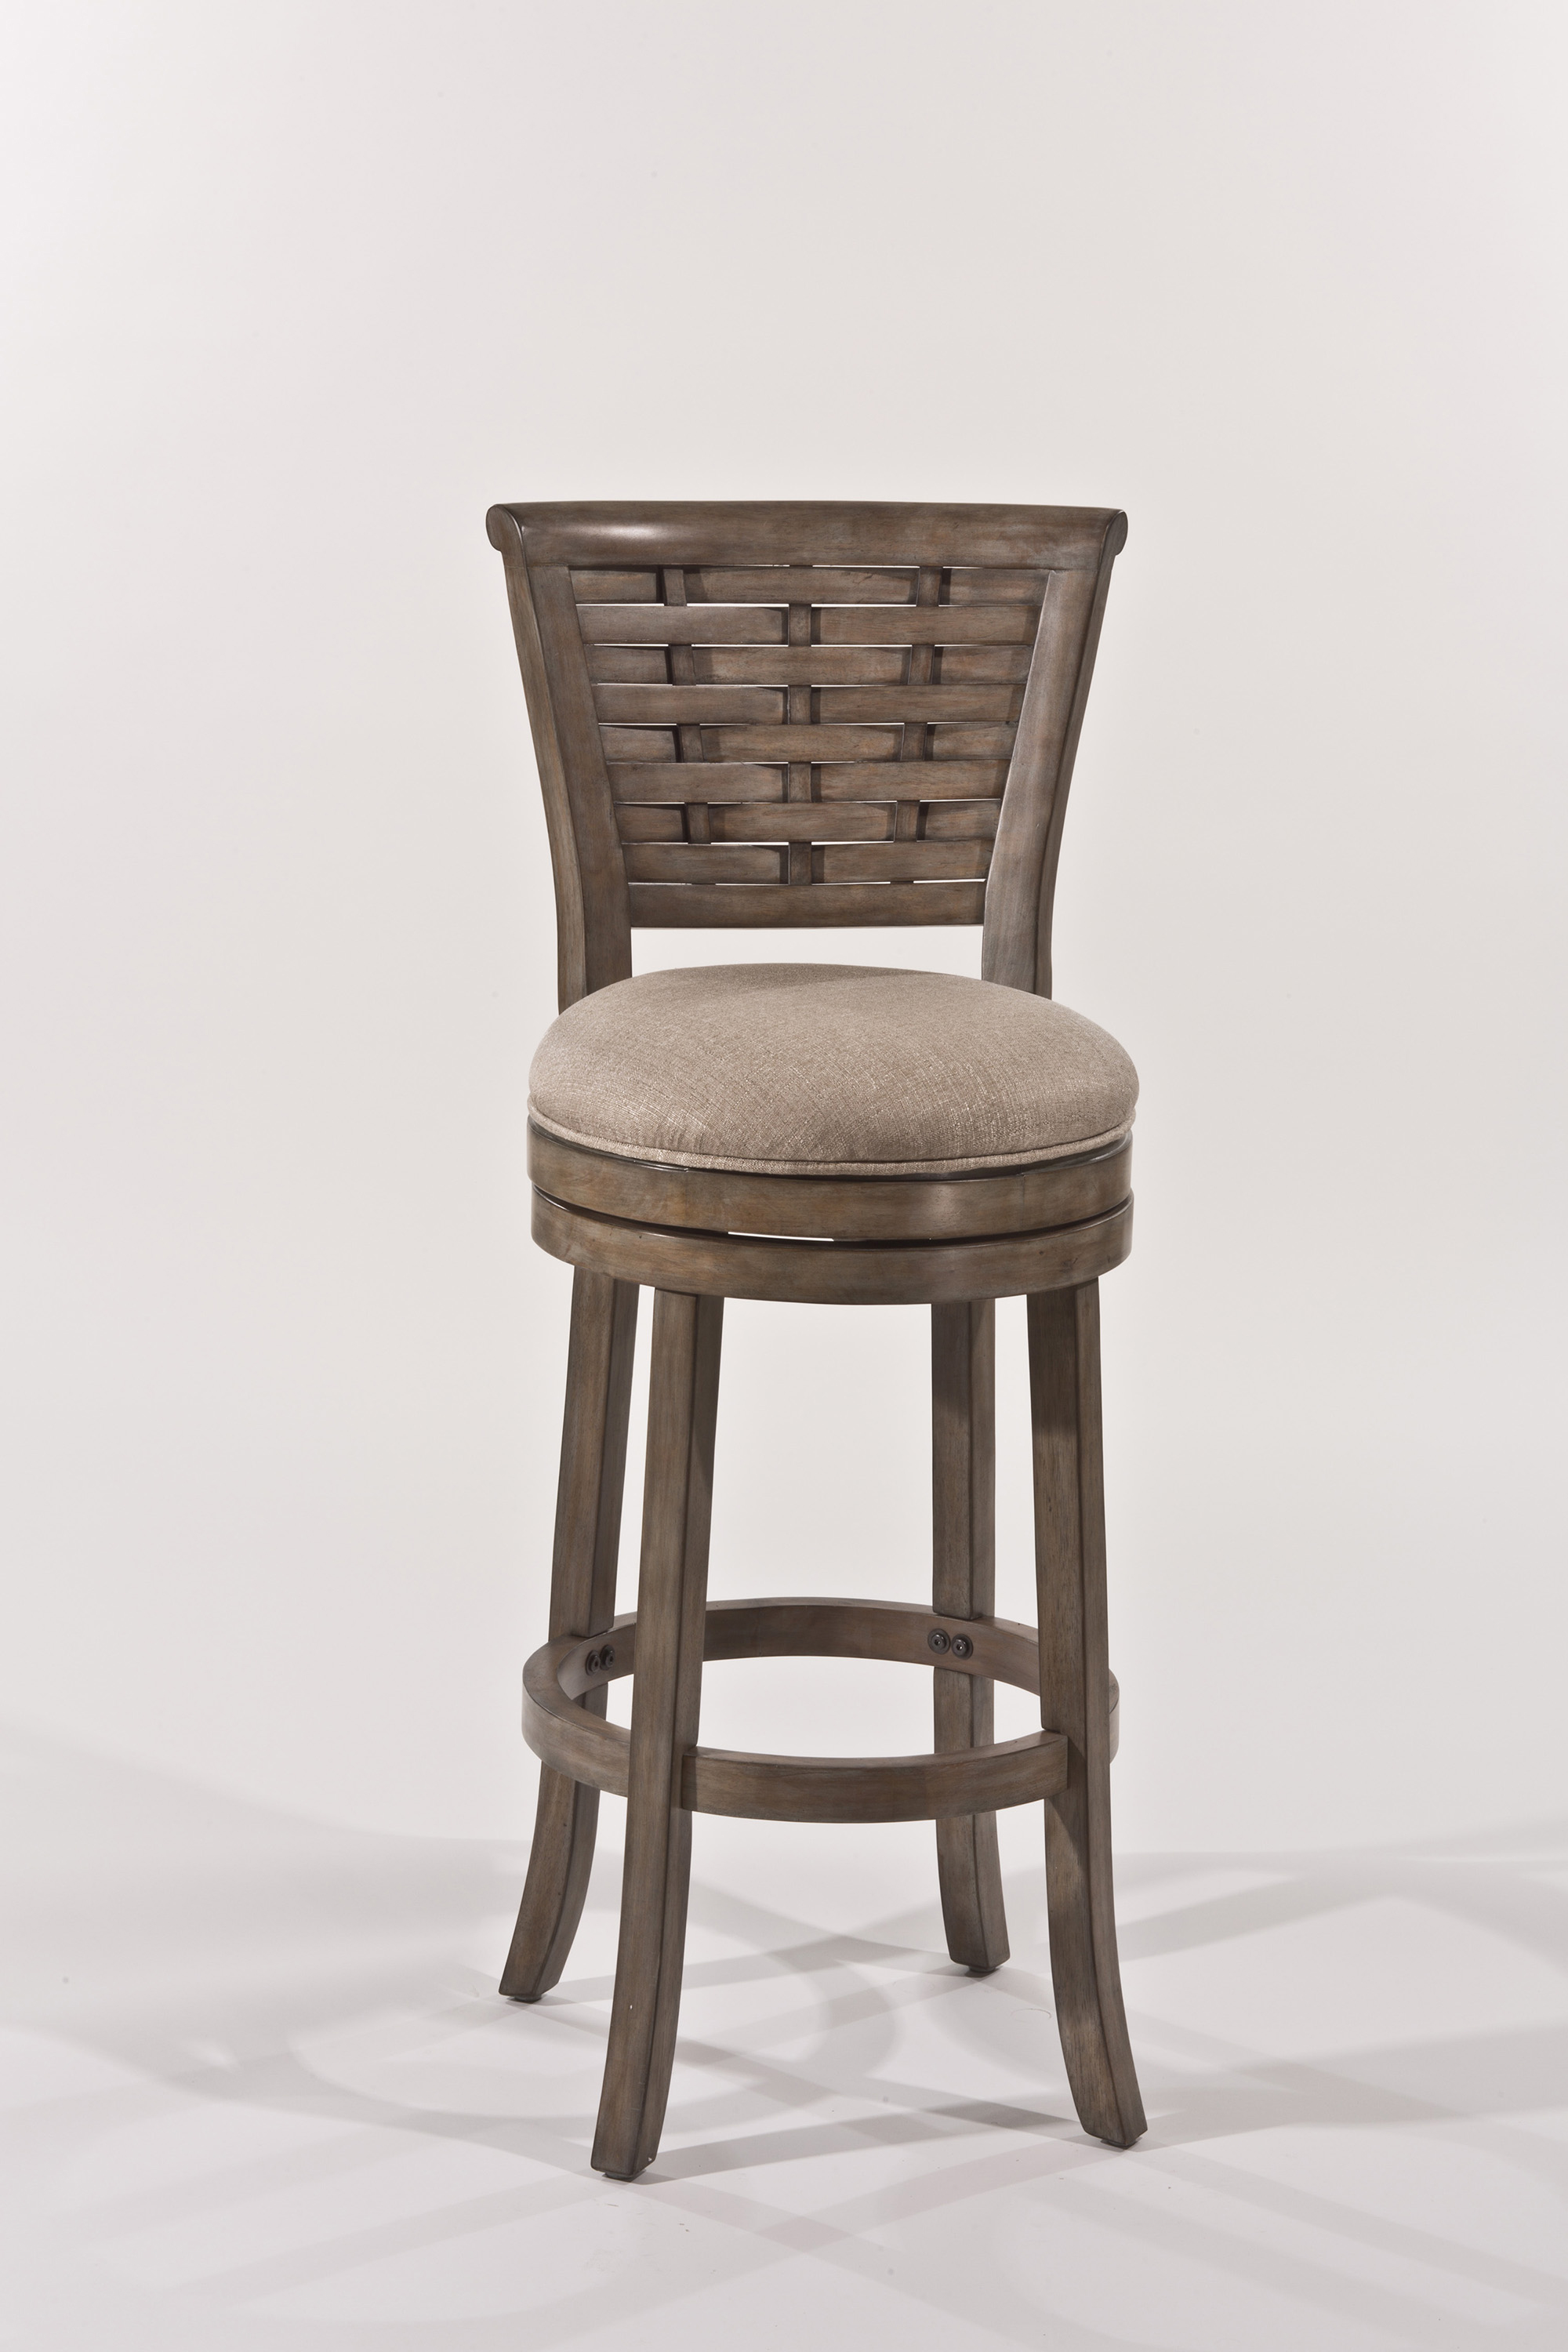 Hillsdale Wood Stools Wooden Swiveling Bar Height Stool ...